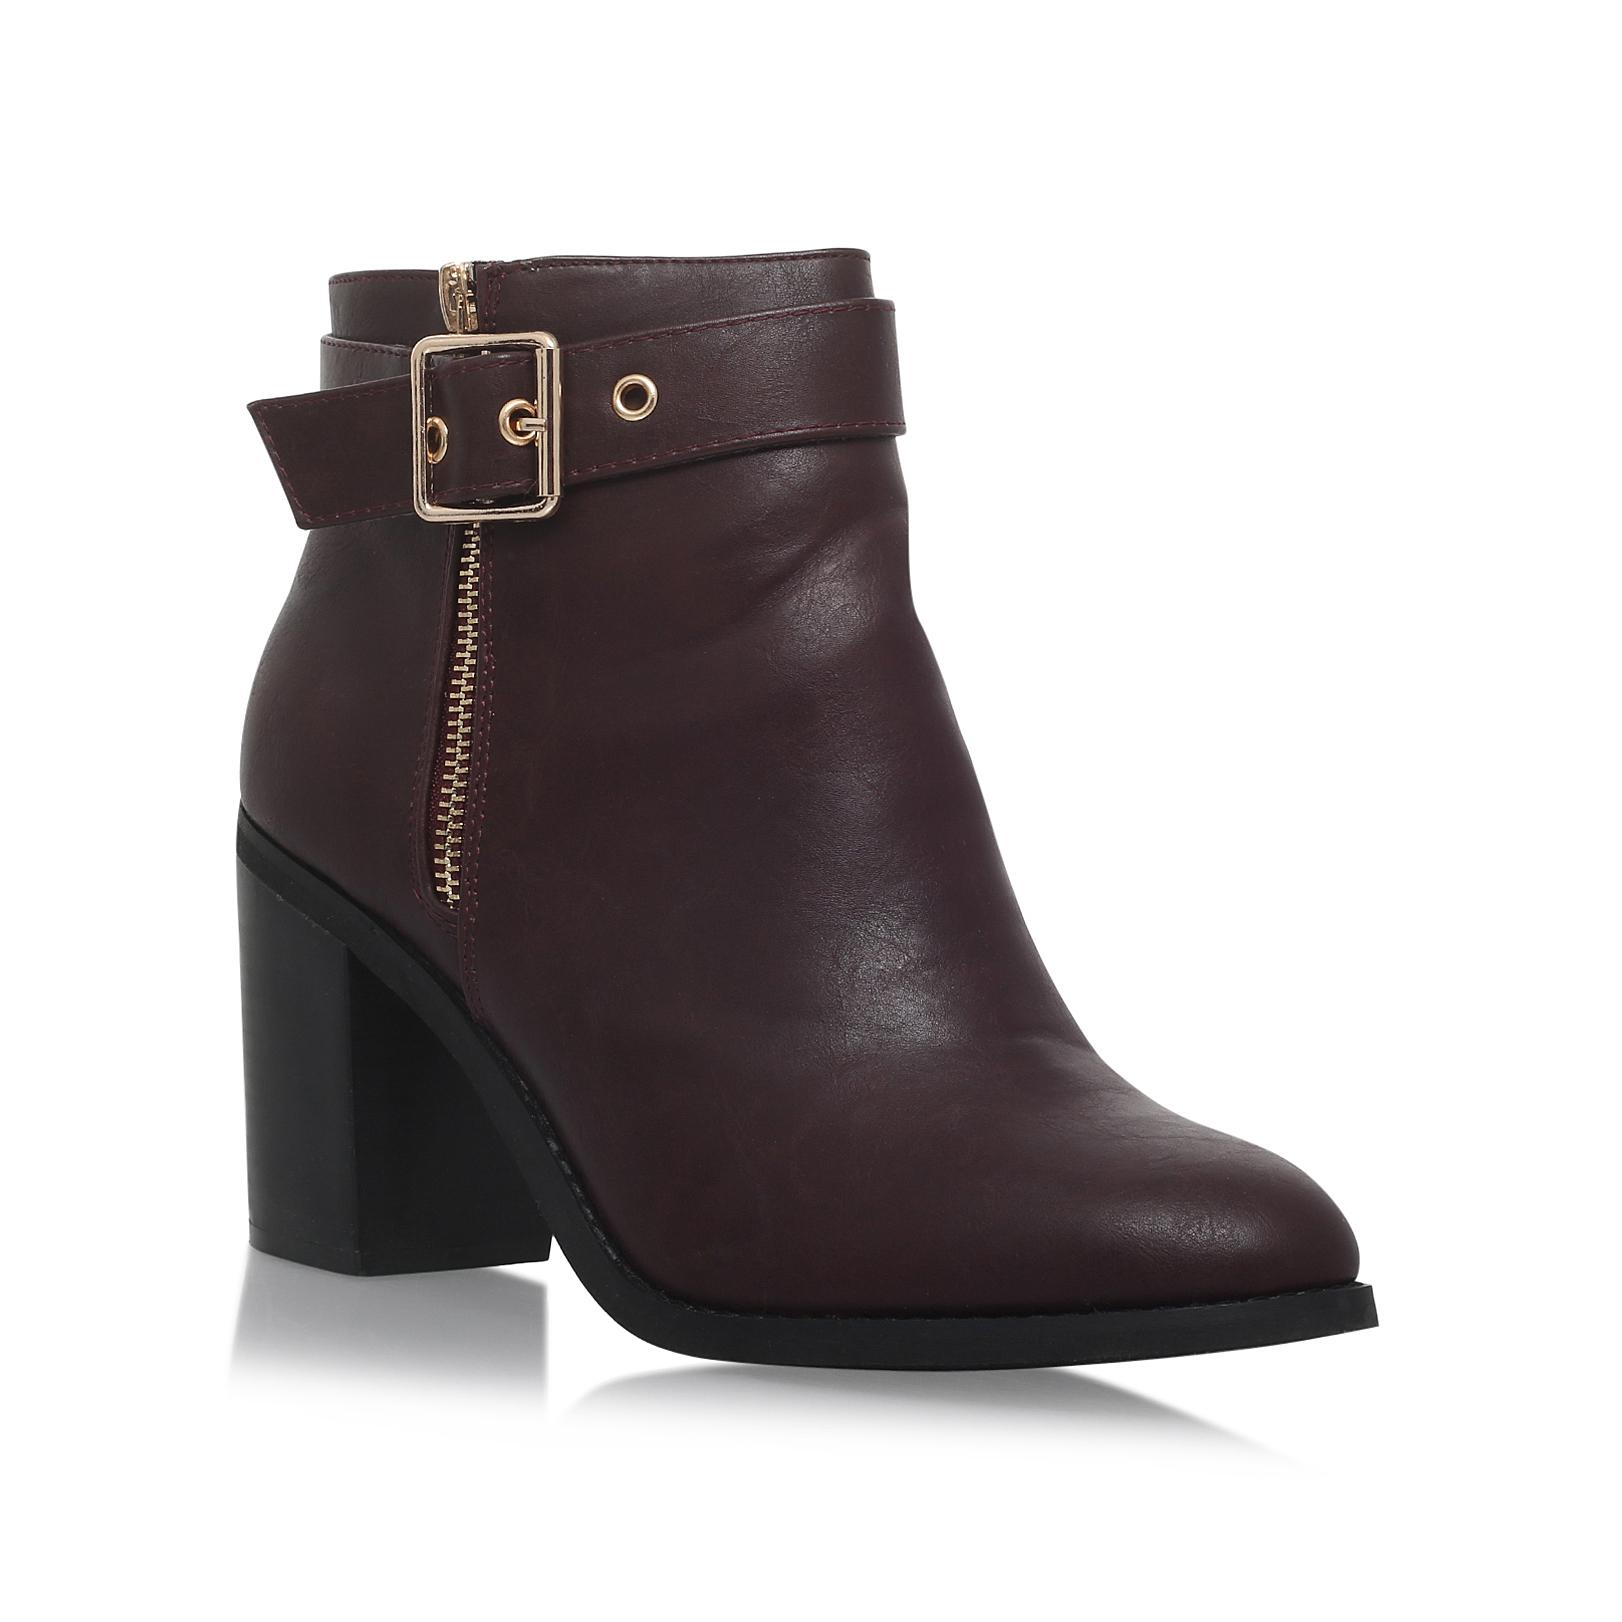 5e573226f81 Miss Kg Janelle Wine High Heel Ankle Boots - Lyst